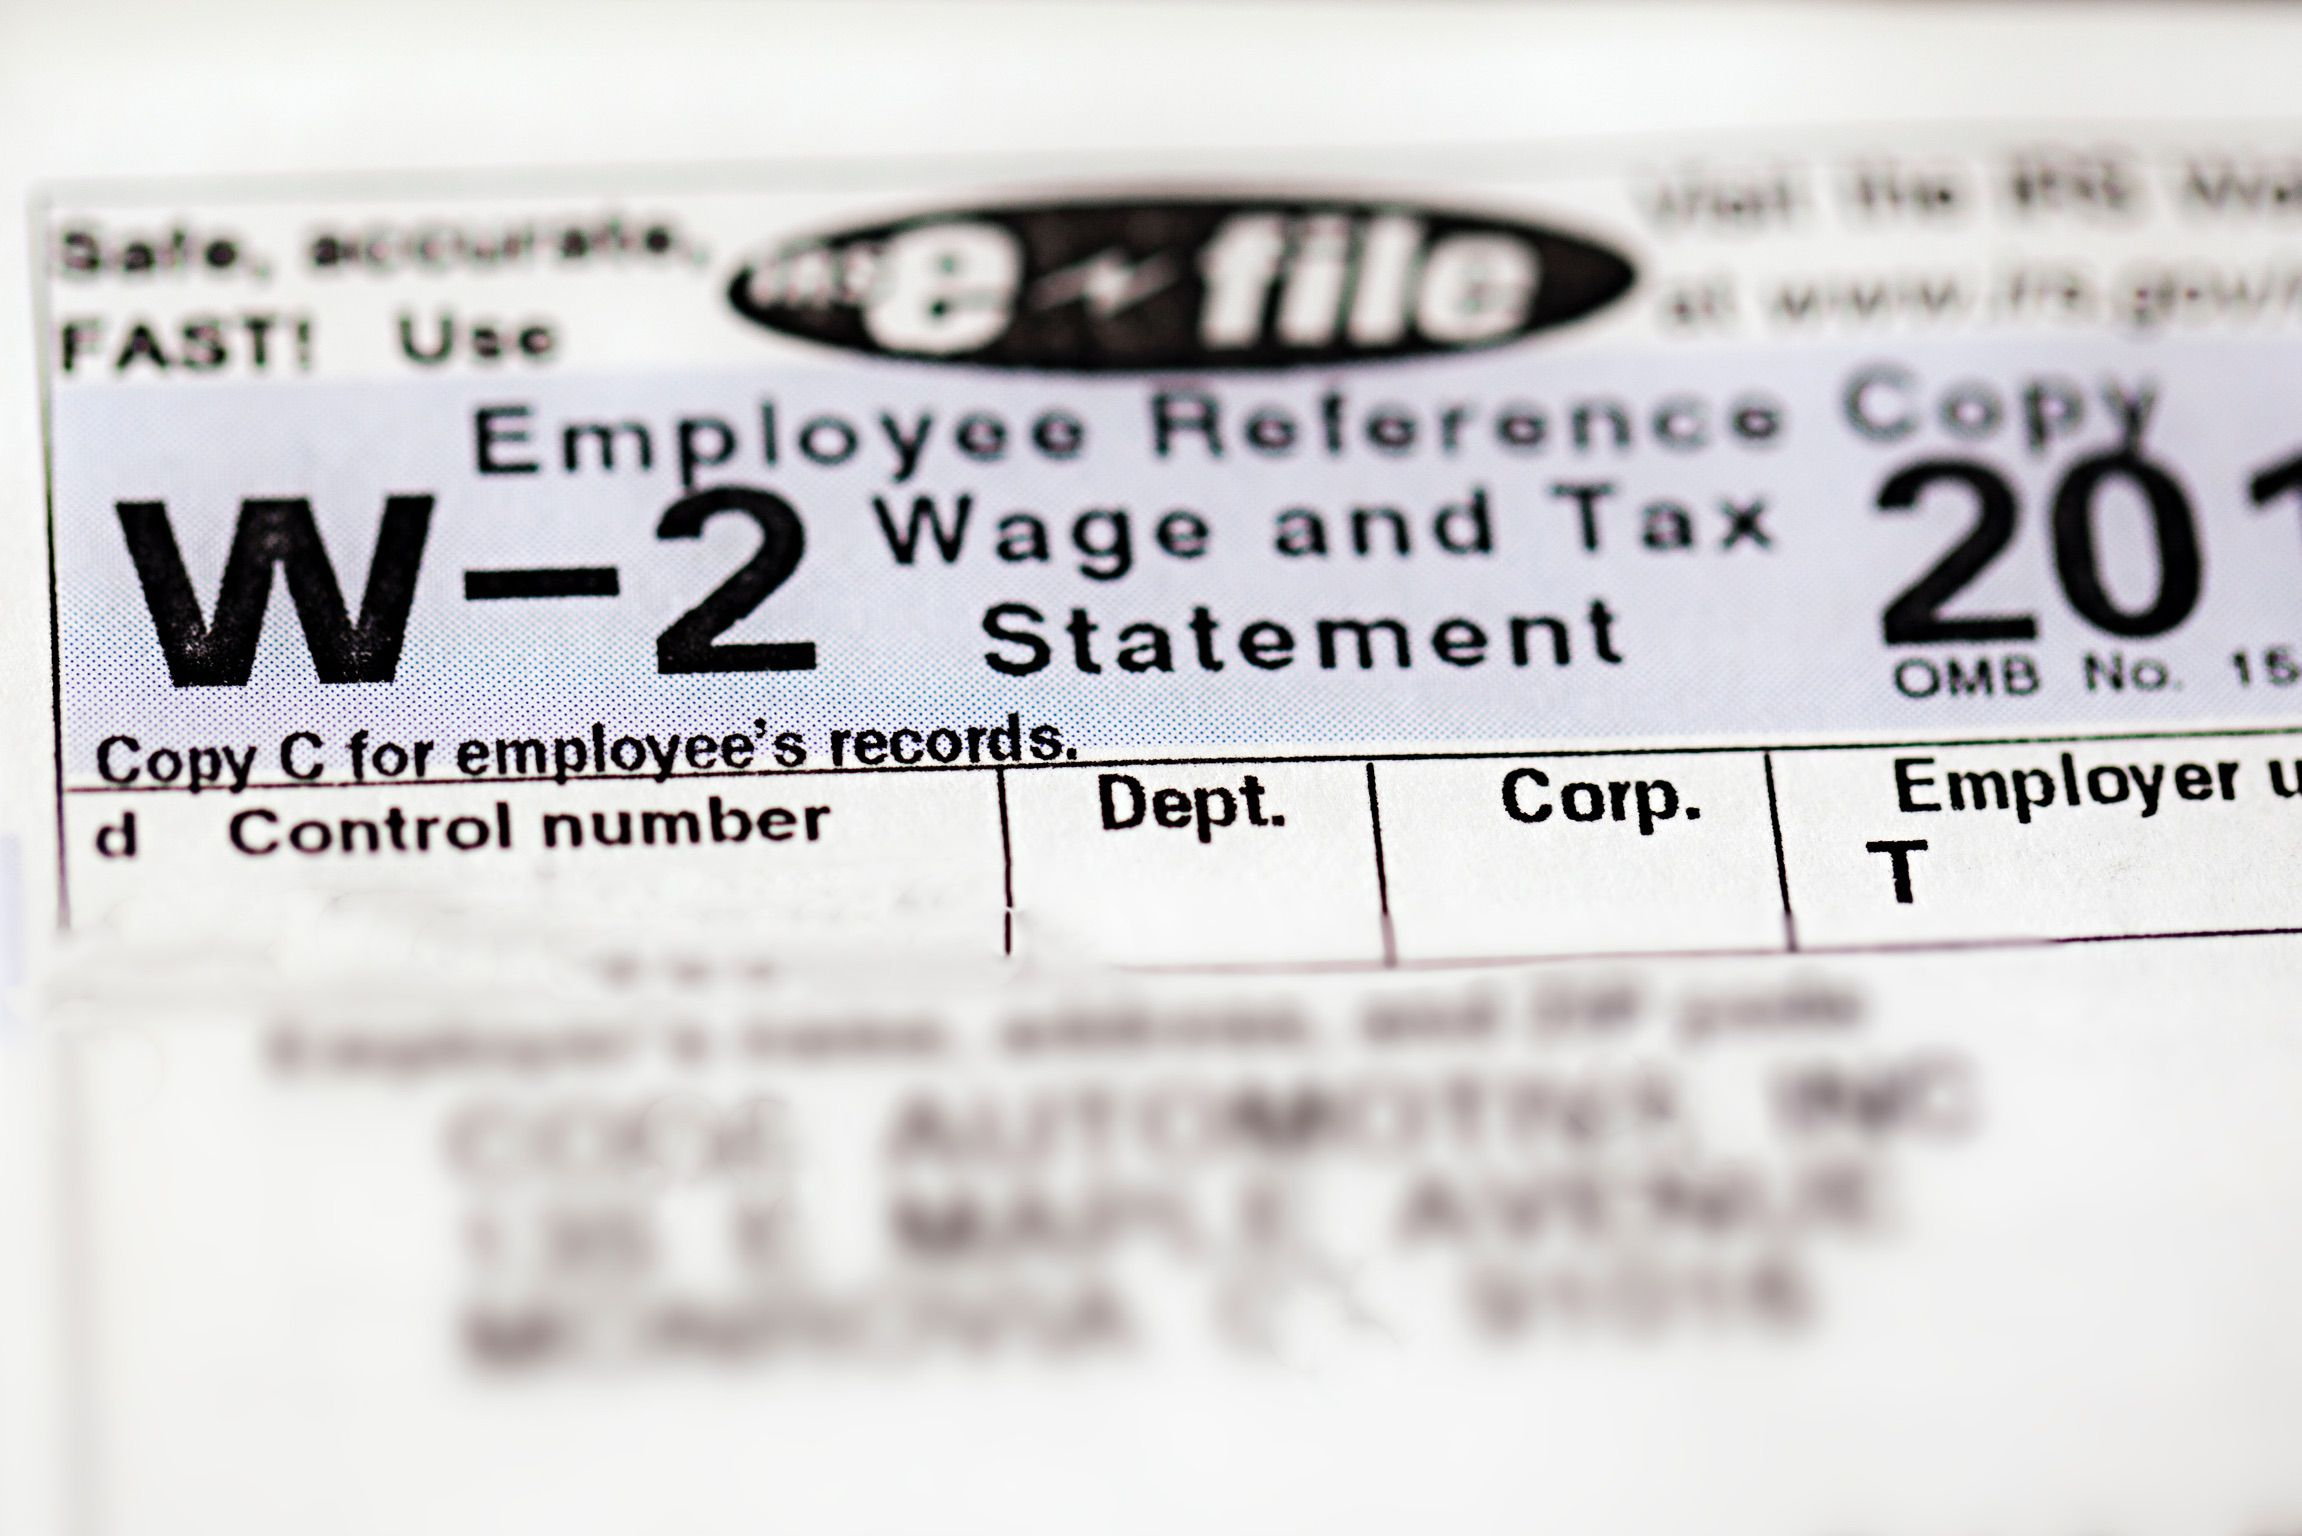 Learn What to Do With RSUs on Form W-2